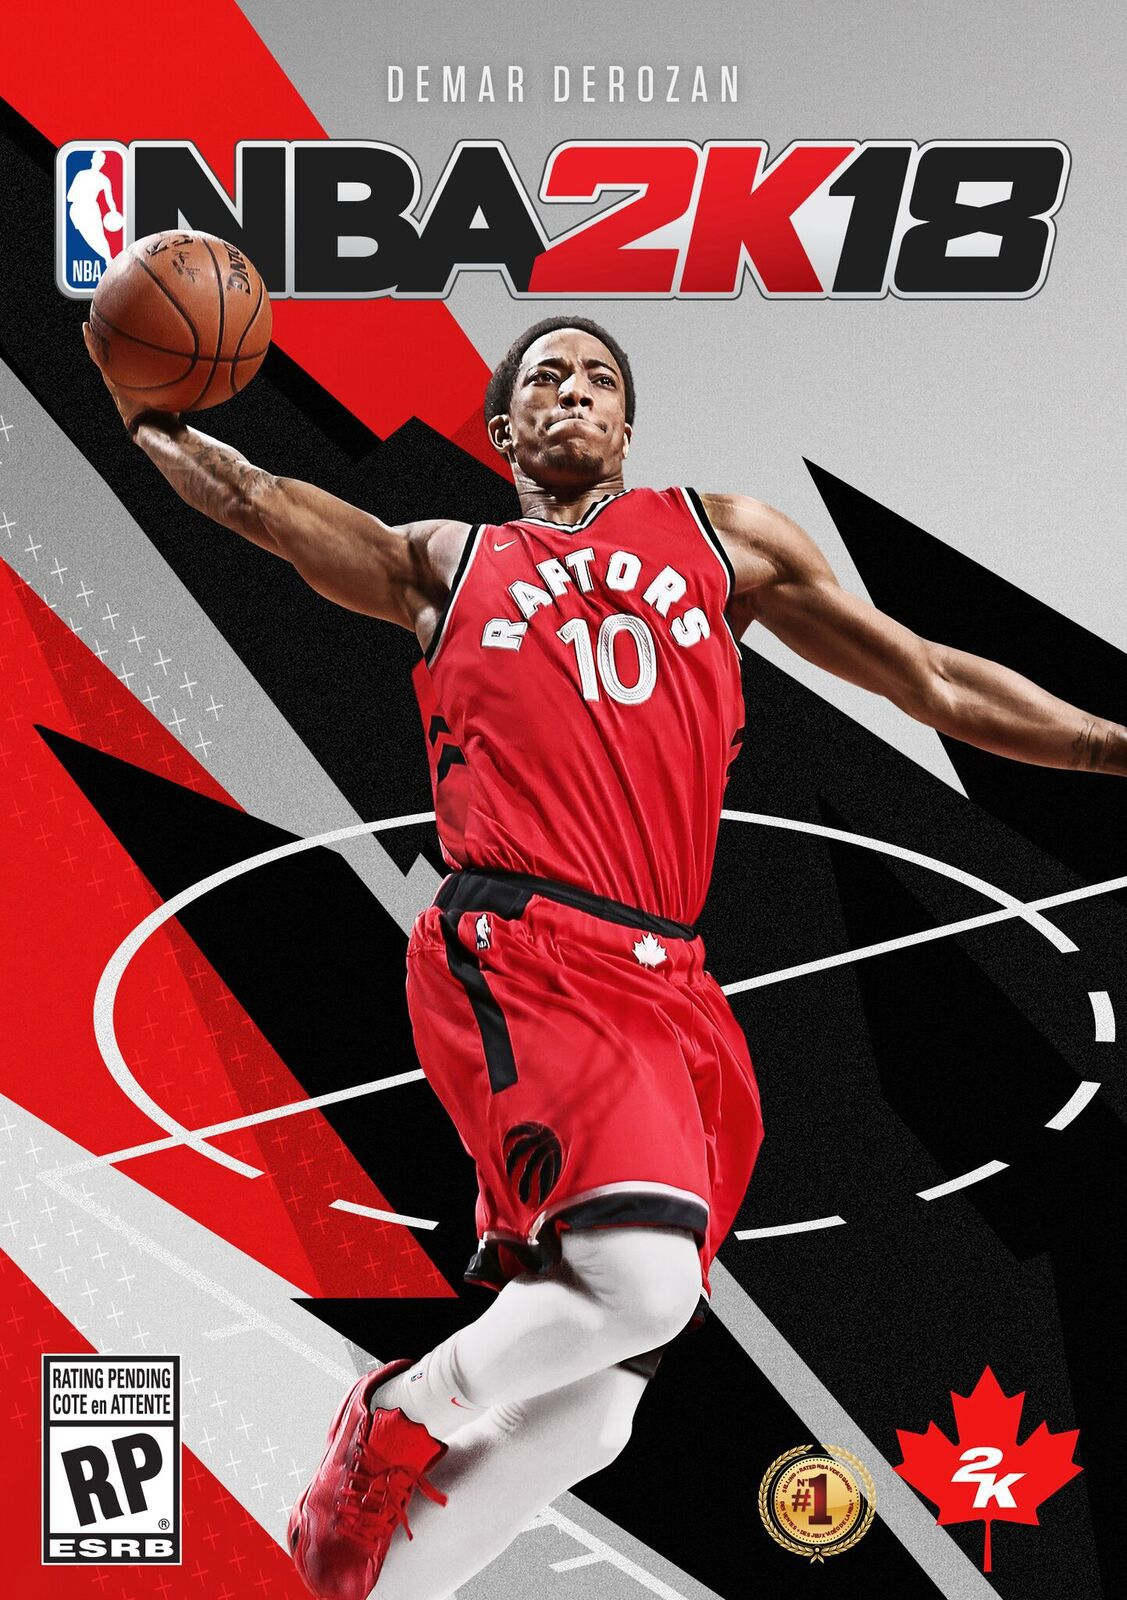 DeMar DeRozan is the first athlete to ever be on 'NBA 2K18' Canadian